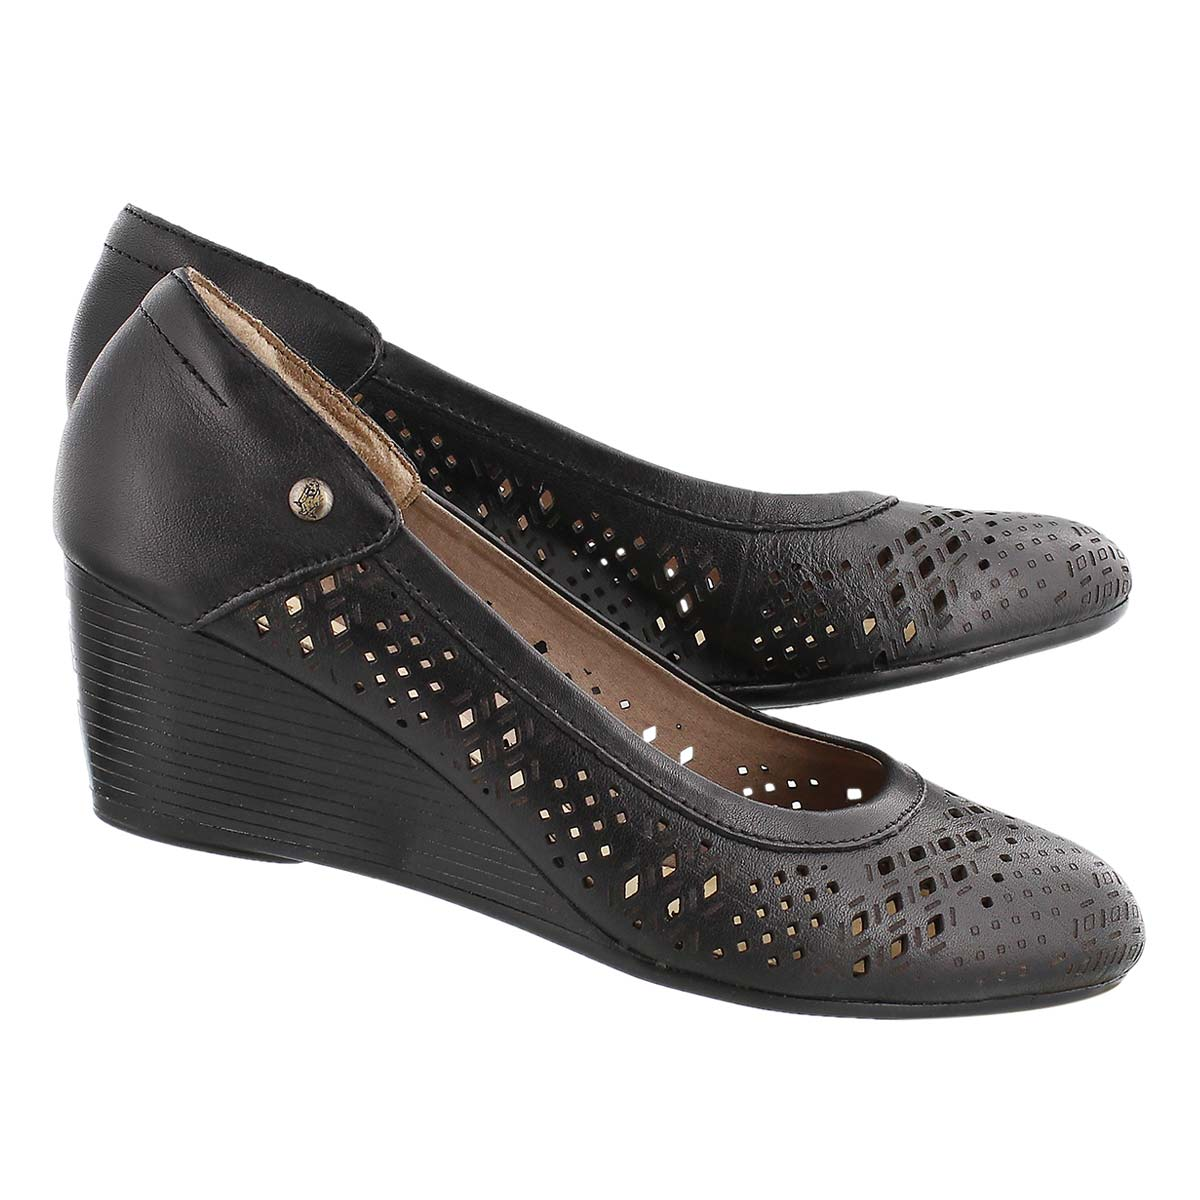 Lds Mindon Rhea black perforated wedge